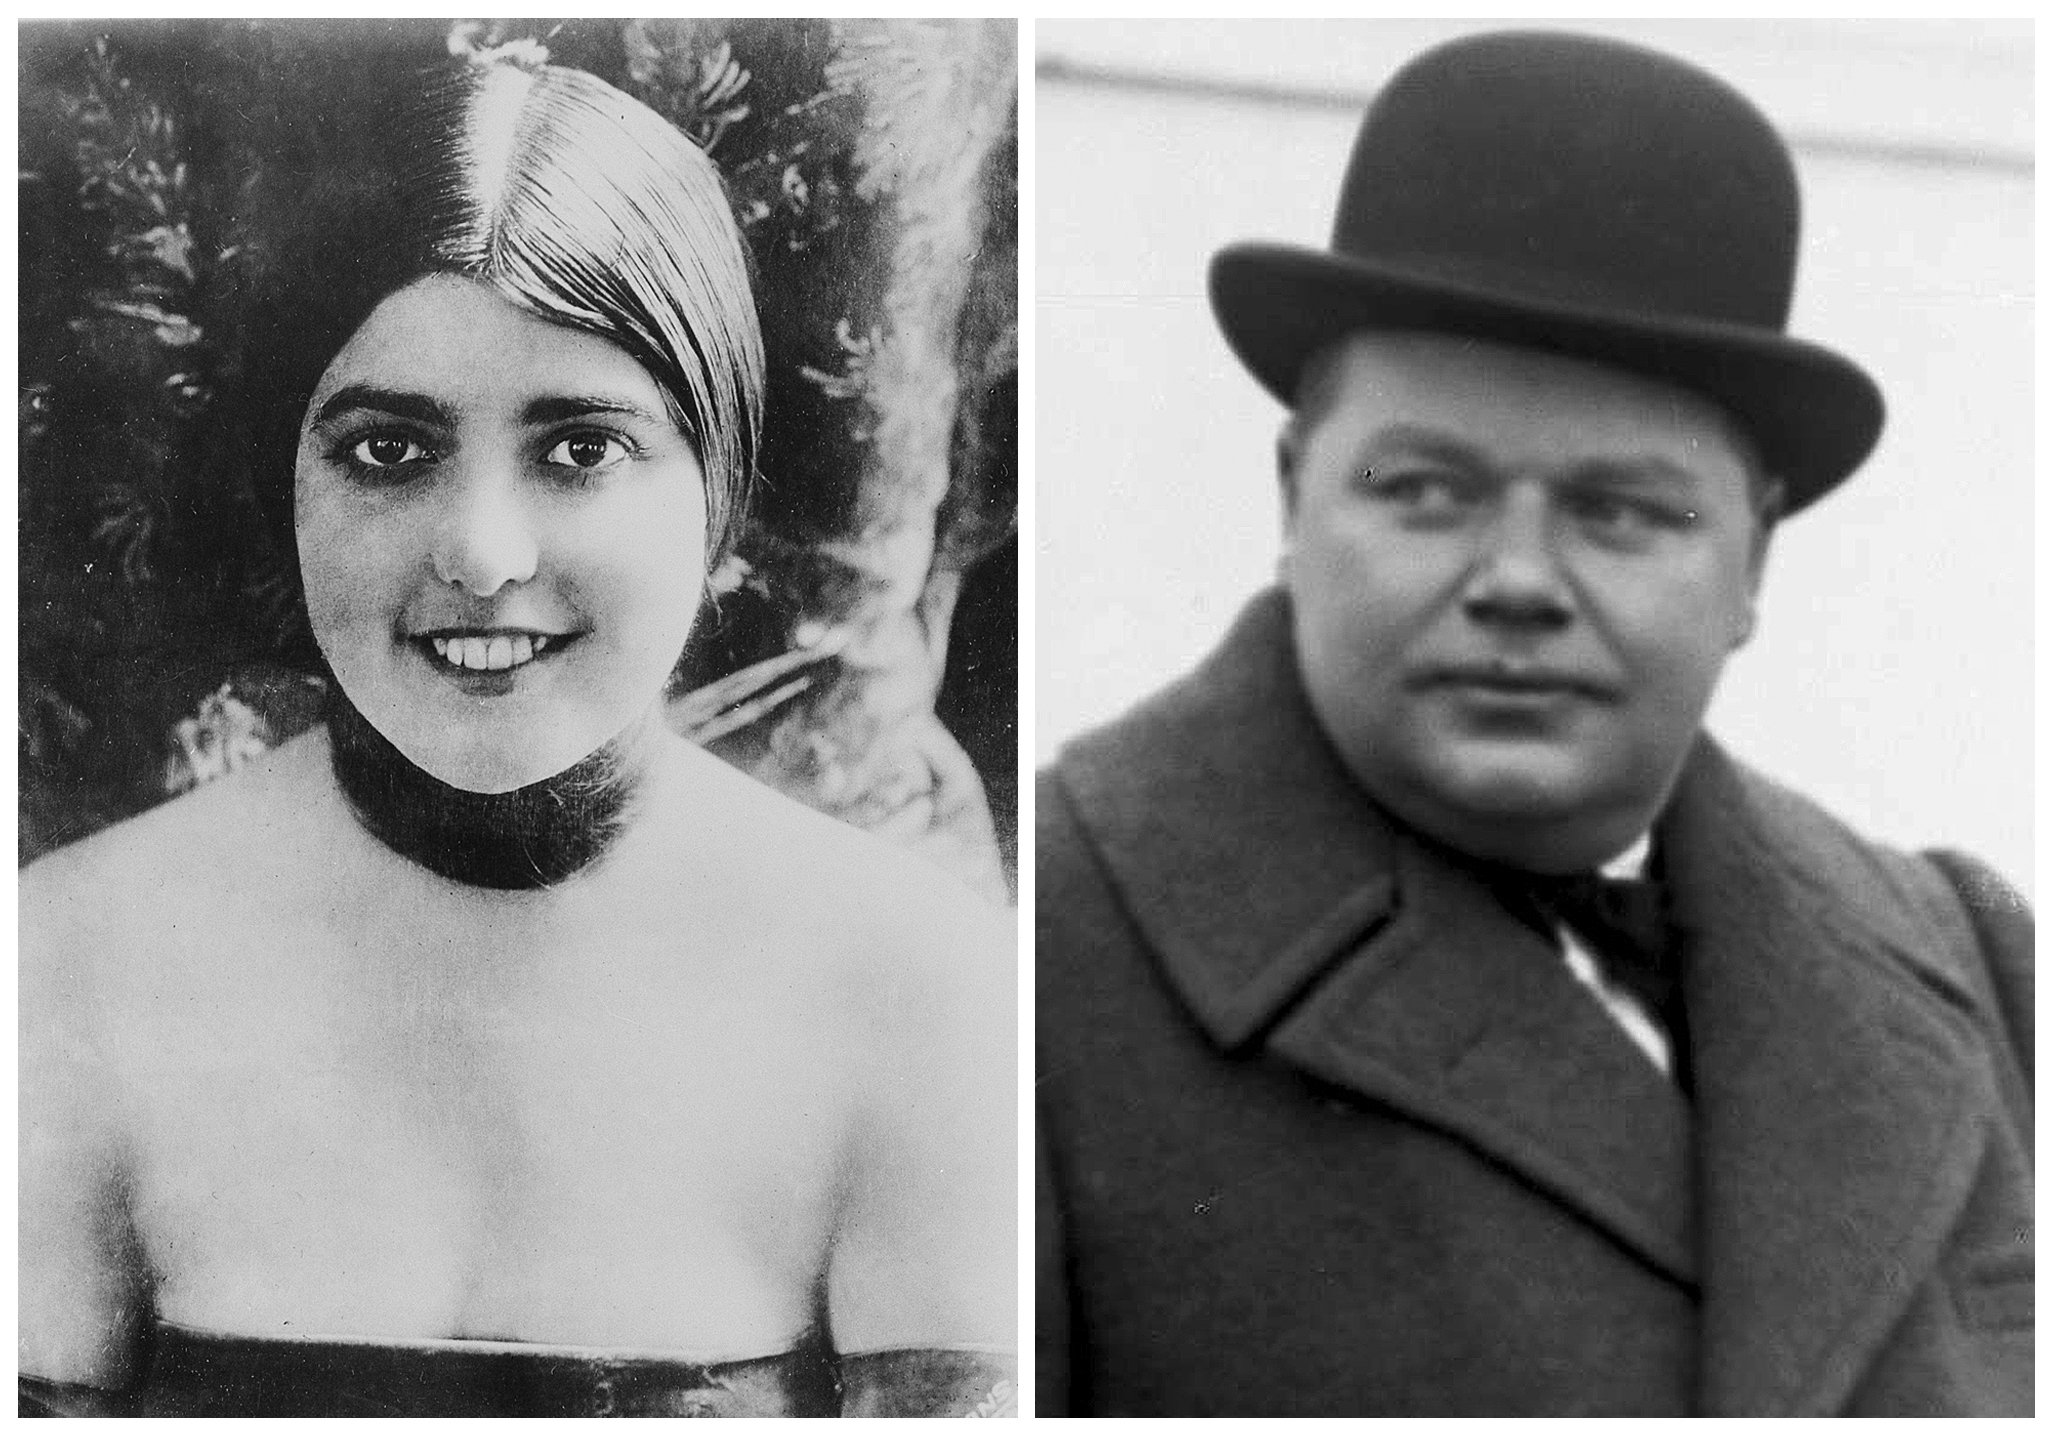 Sex scandals in the 1940s